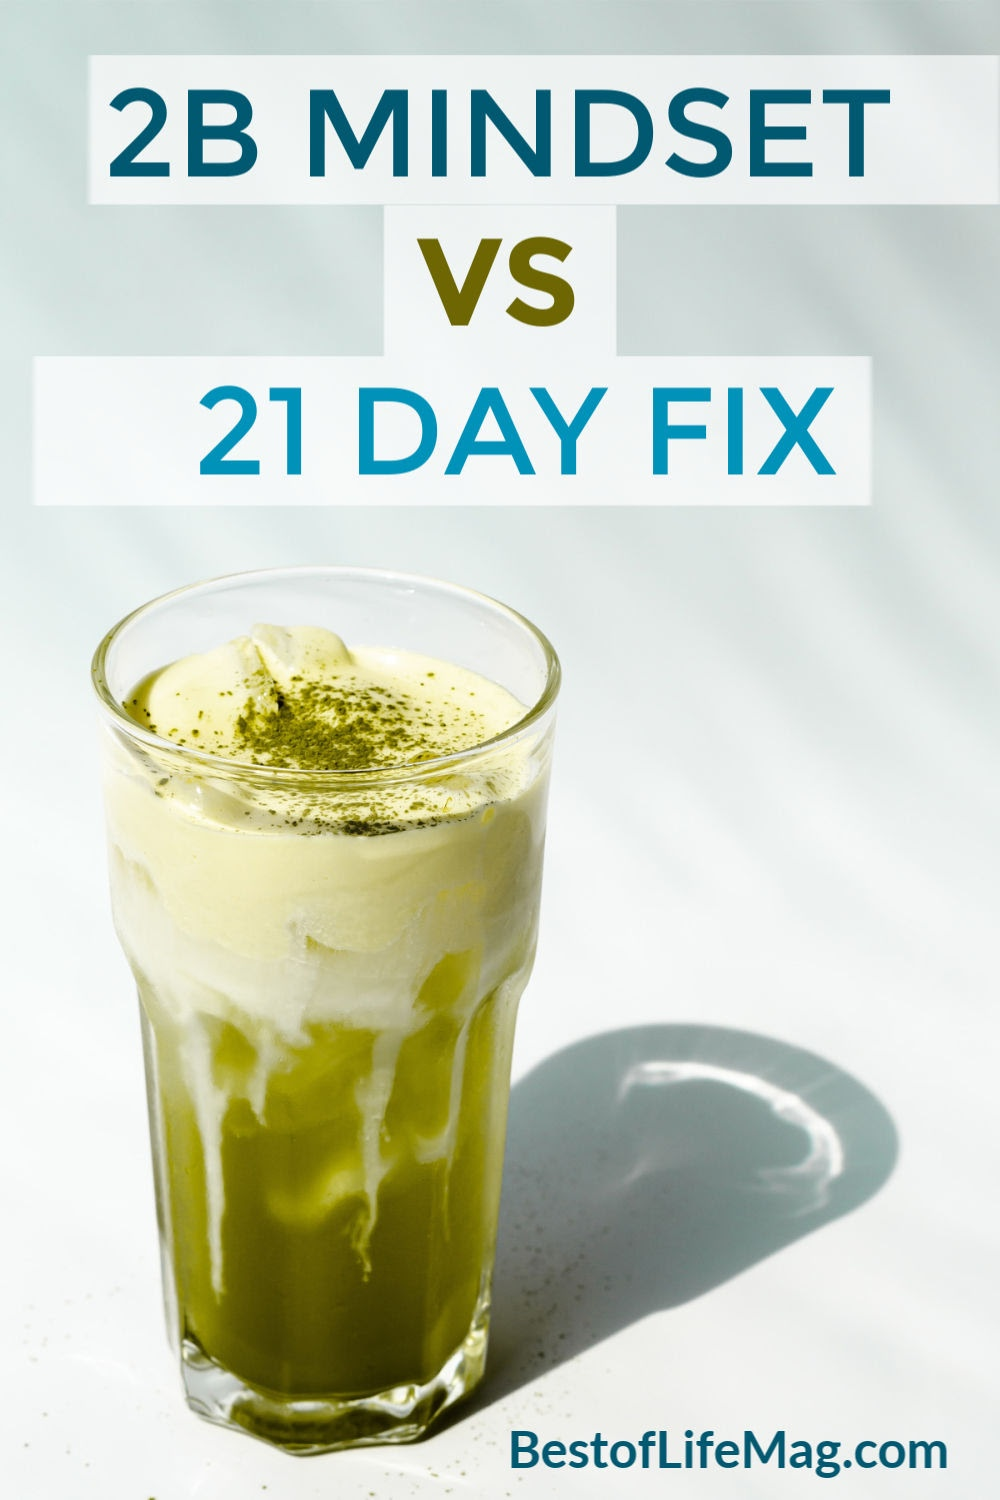 Taking 2B Mindset vs 21 Day Fix will let you see the many differences between both of the best Beachbody diet plans that are designed to help you lose weight. Finding the best diet plan that will help you lose the most weight sounds impossible. But Beachbody makes the impossible, possible with the help of nutritionists and their healthy diet plans. #2BMindset #21DayFix #WeightLoss #MealPlanning #Diets #21DF